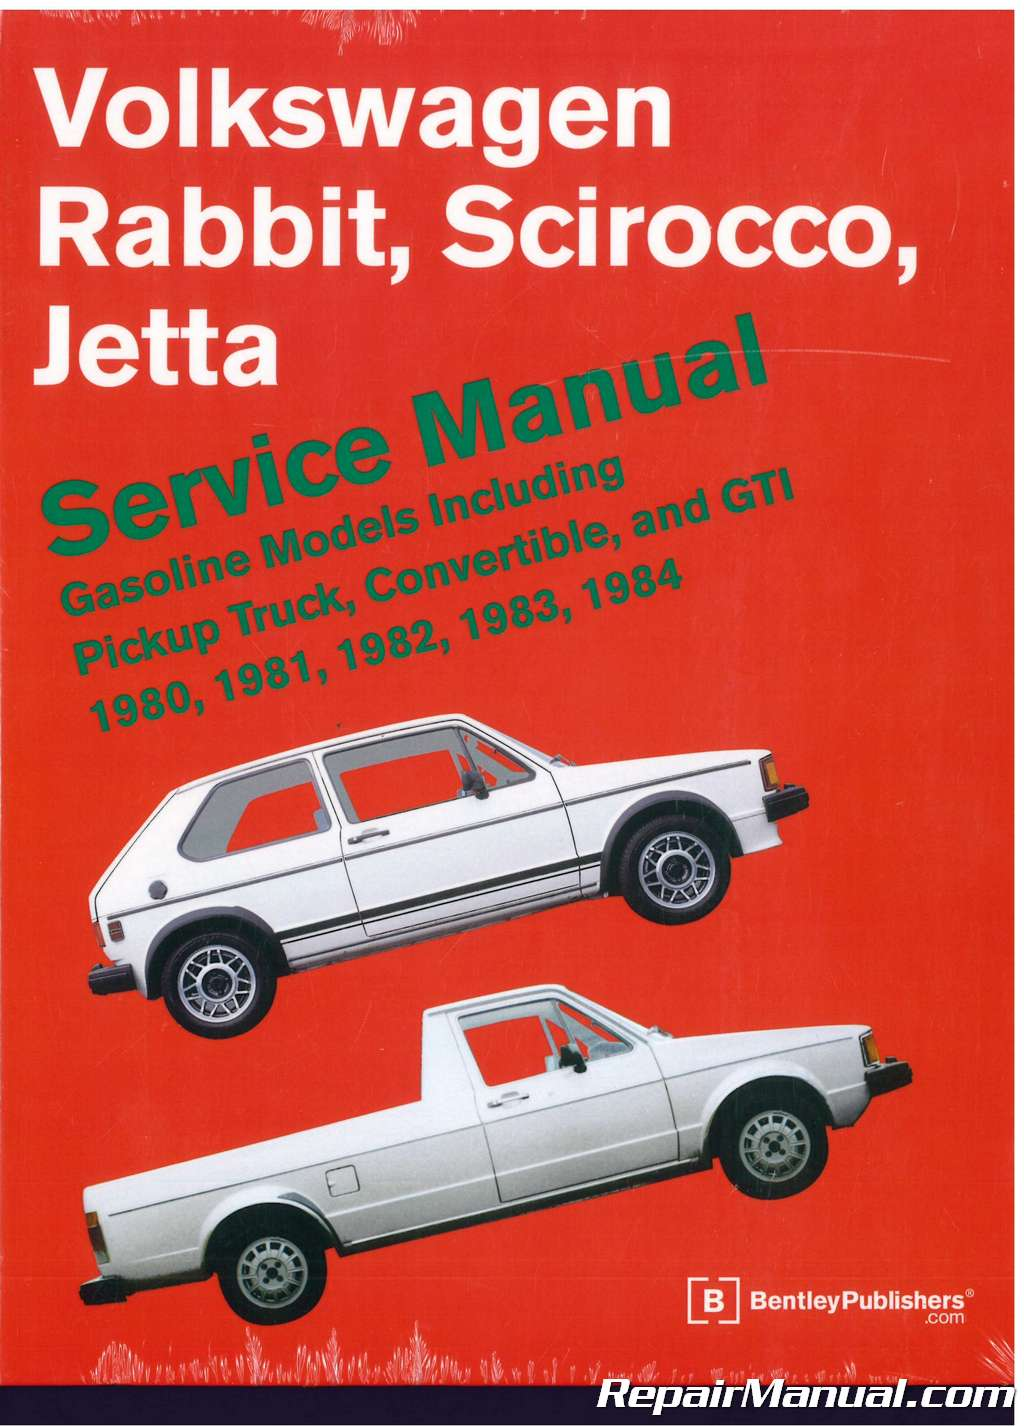 volkswagen rabbit scirocco jetta service manual 1980 1984 84 VW Rabbit Convertible volkswagen rabbit scirocco jetta service manual